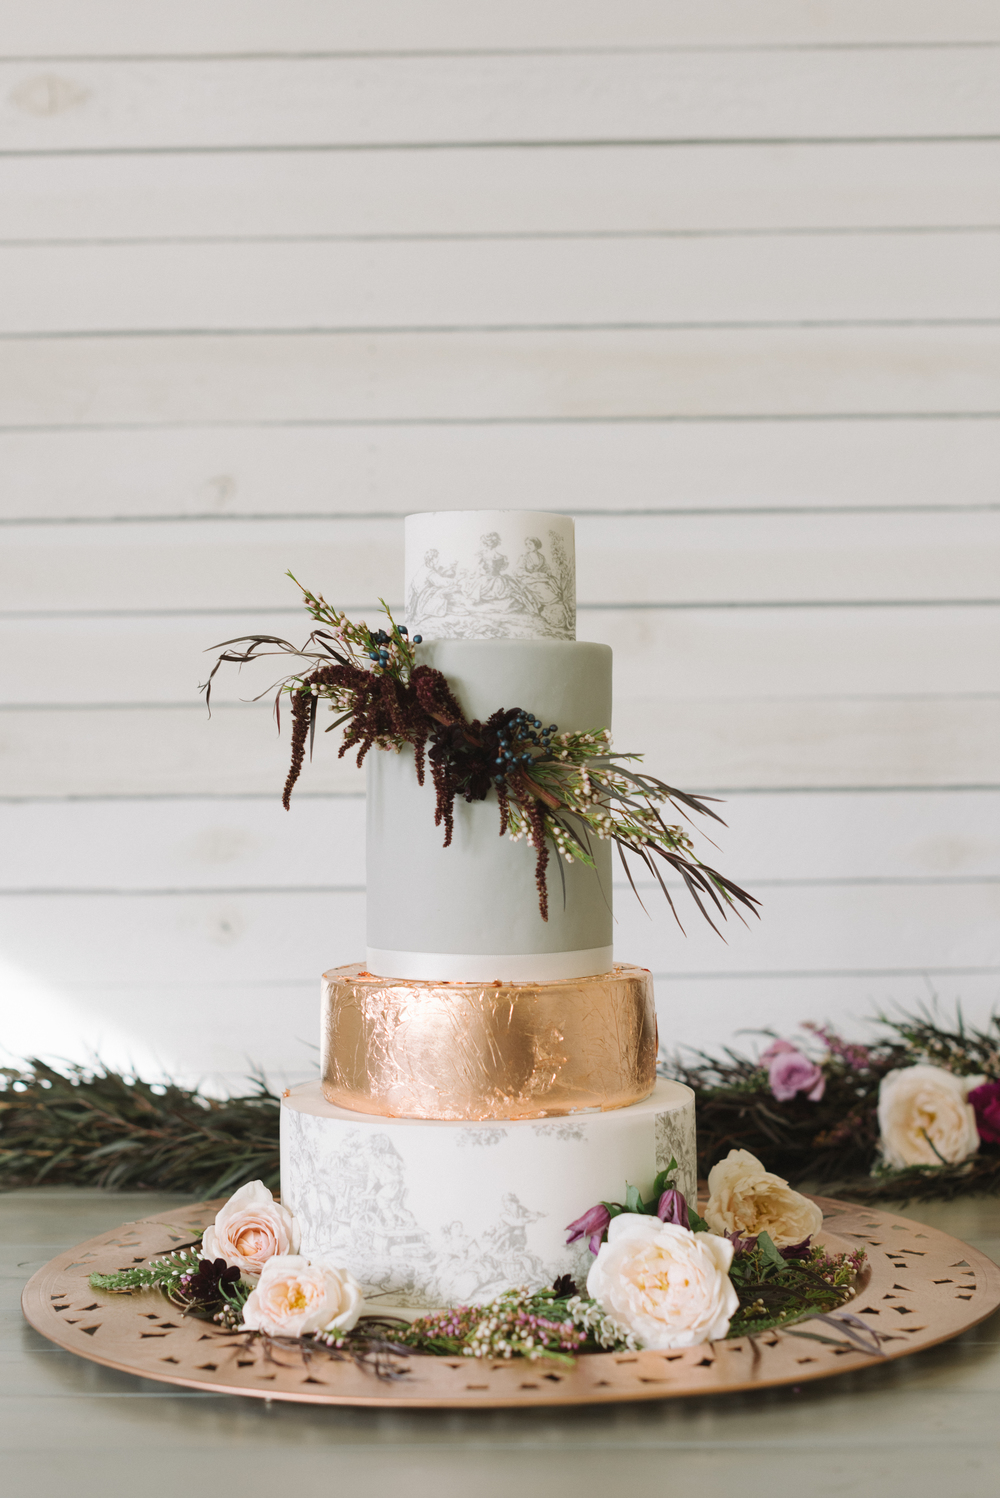 Jessie Alexis Photography | Toile and Copper Wedding Photography | Michelle Leo Events | Utah Wedding Design and Planning